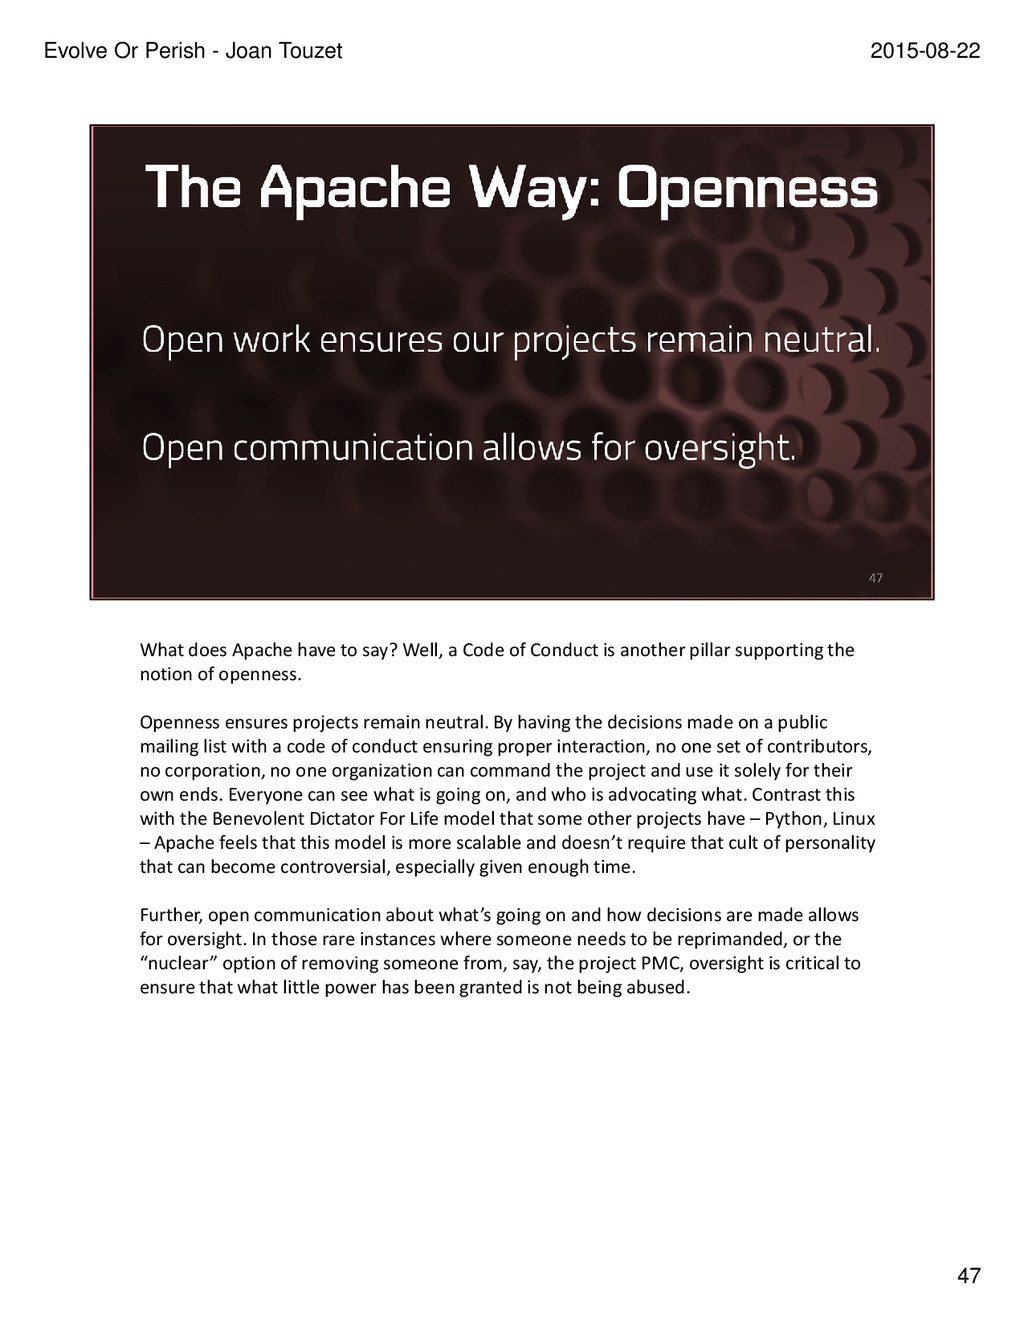 What does Apache have to say? Well, a Code of C...